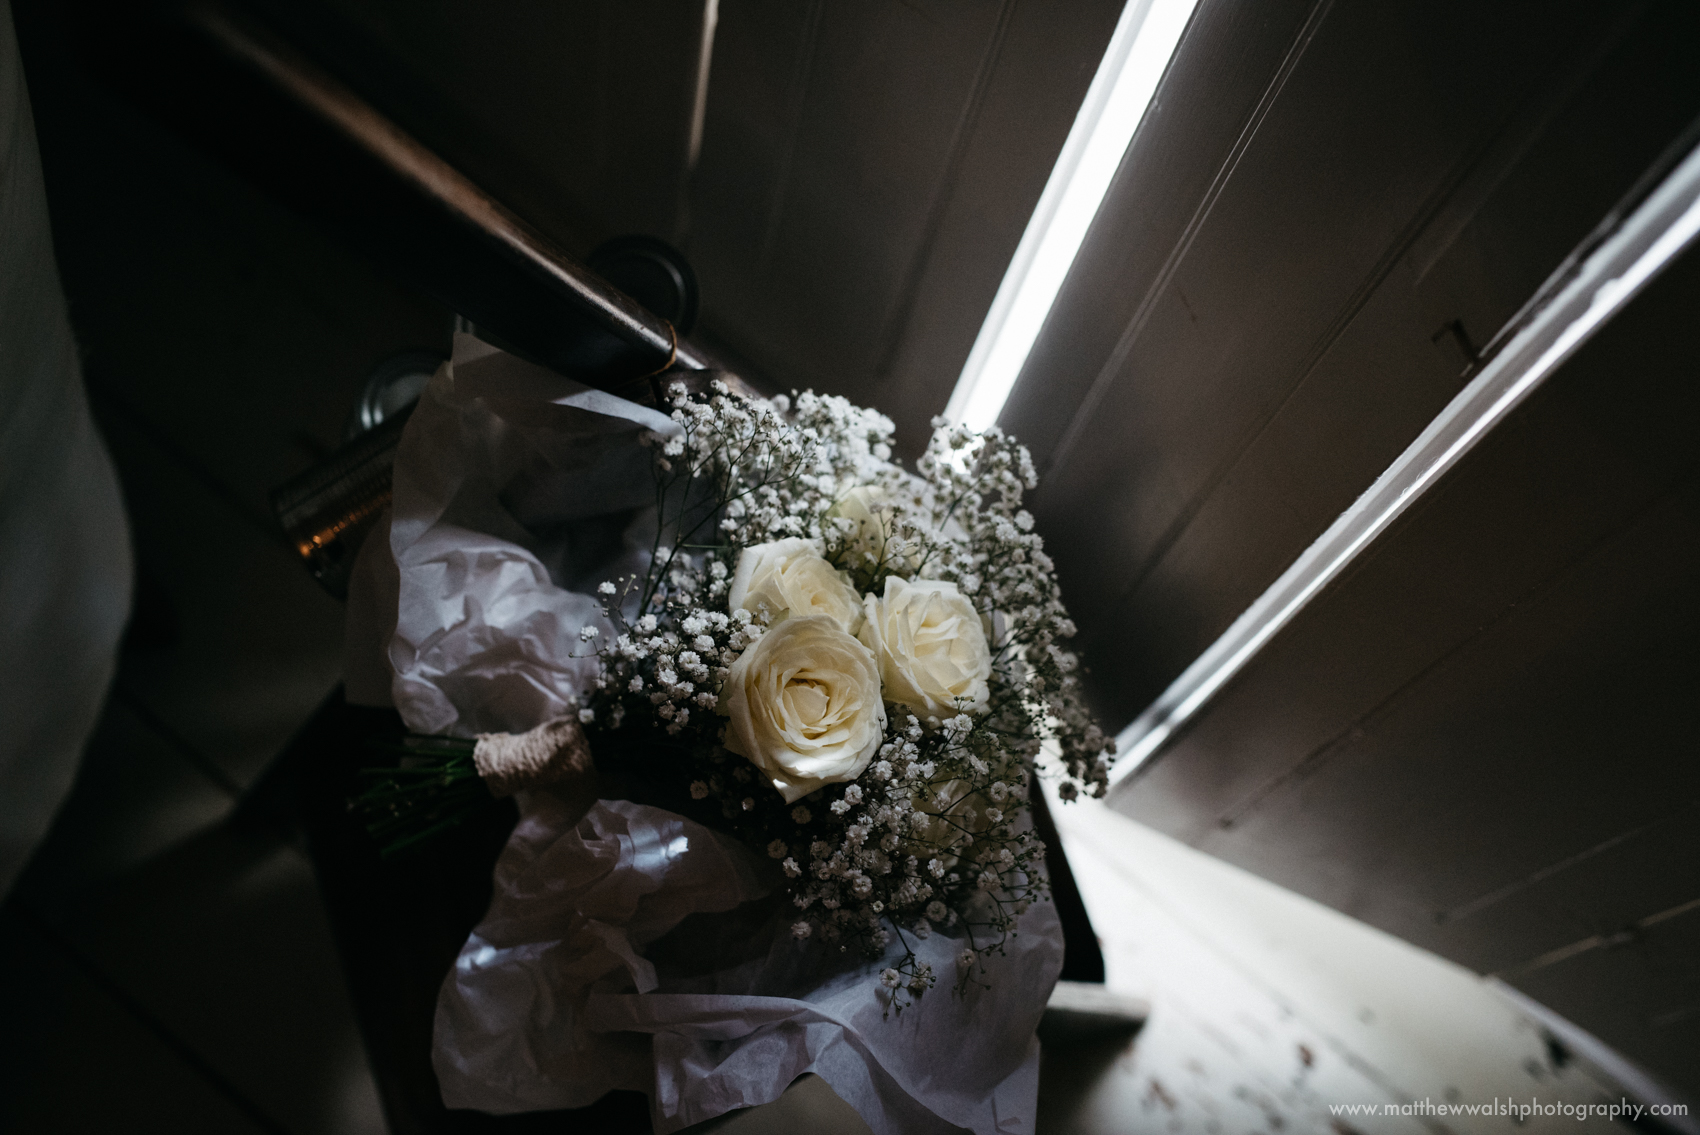 The brides bouquet also lit by a slither of light coming in through the french doors in the drawing room